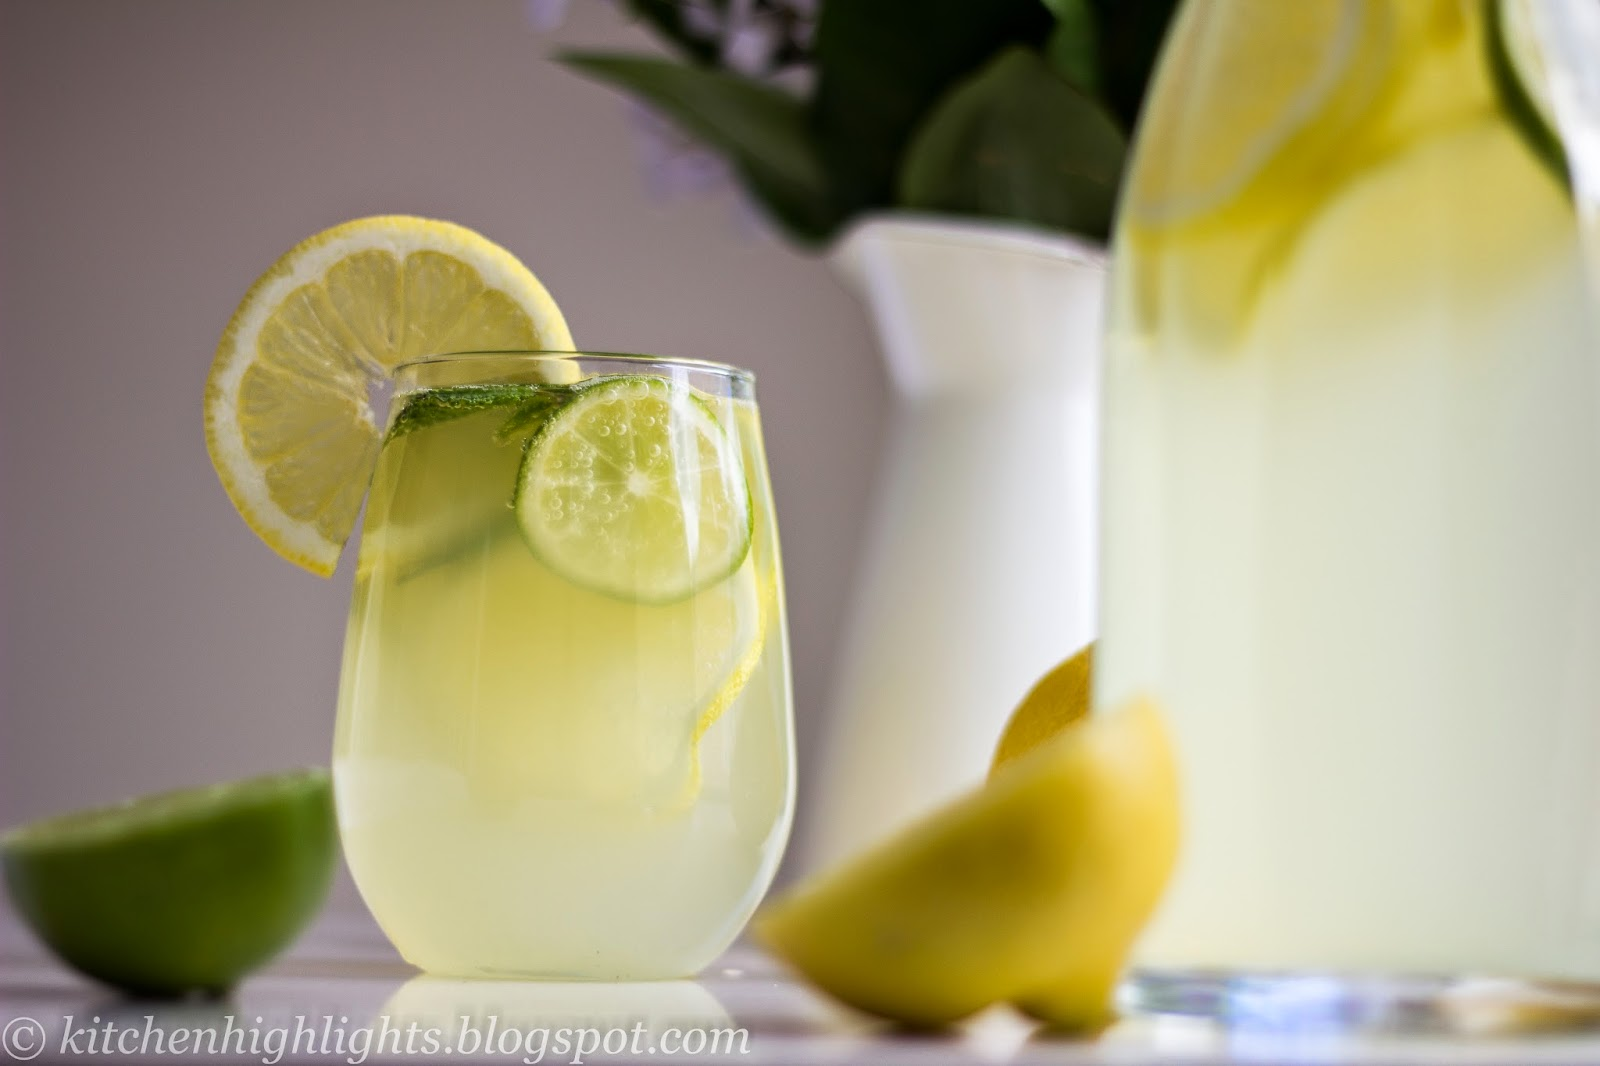 There's nothing more refreshing than a glass of cool lemonade on a warm day